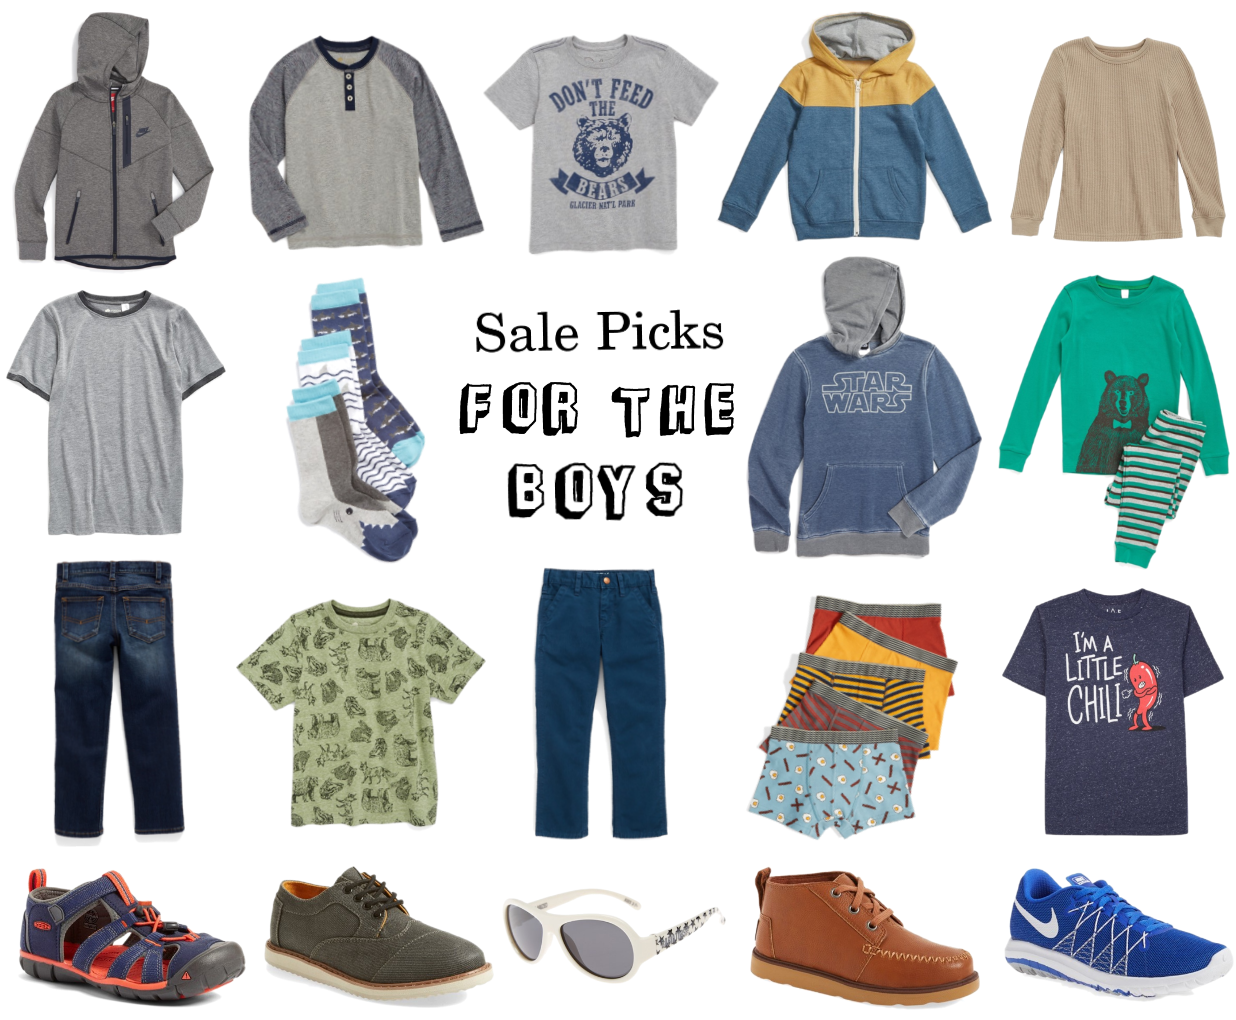 Top Boy Picks